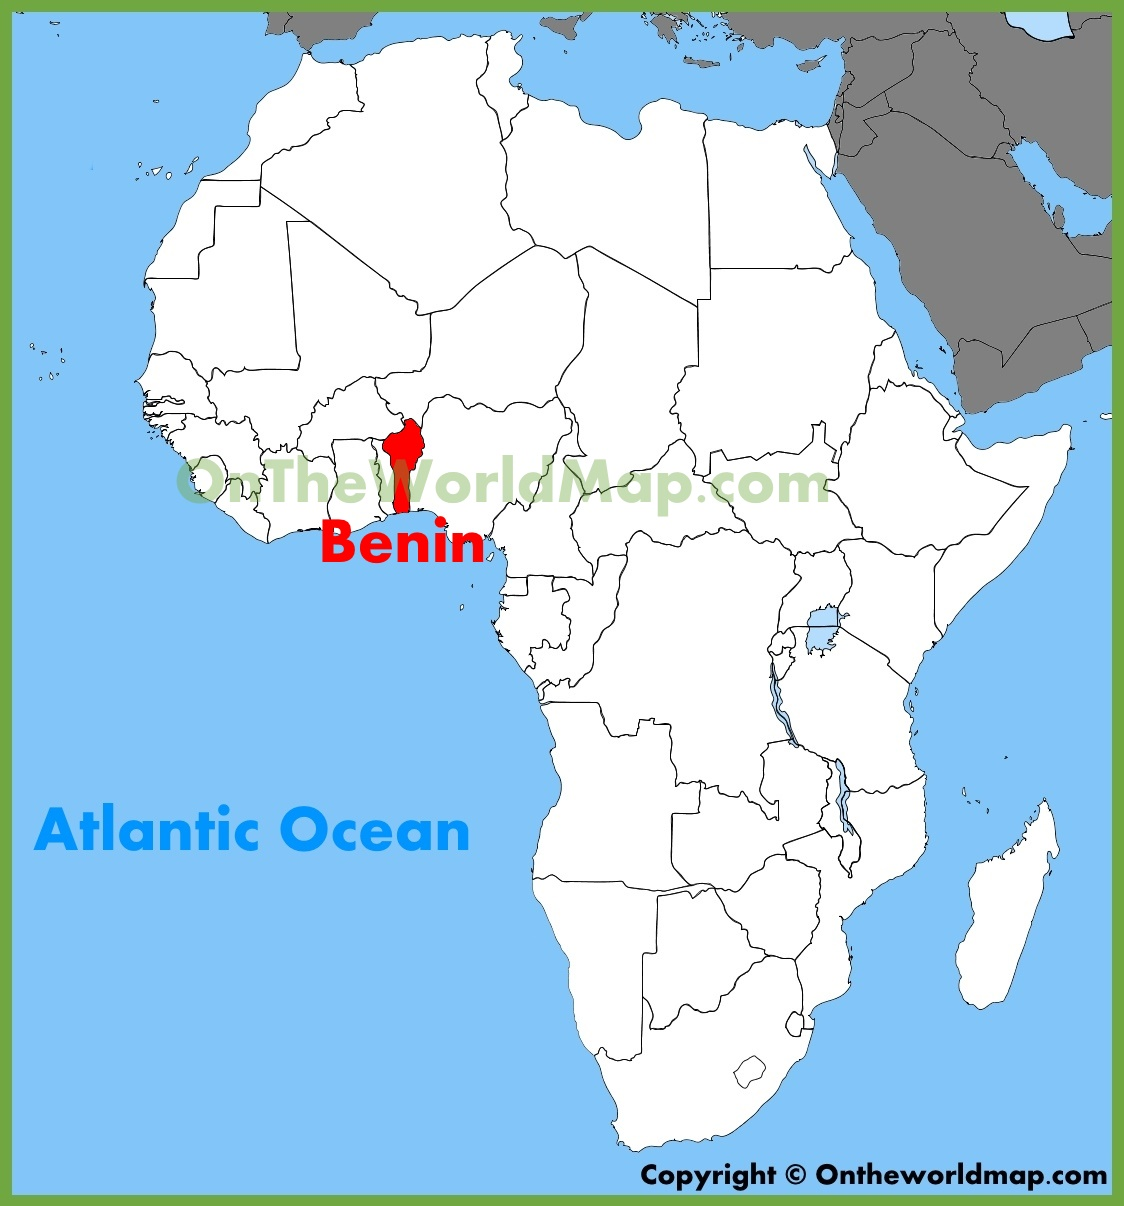 Benin location on the Africa map